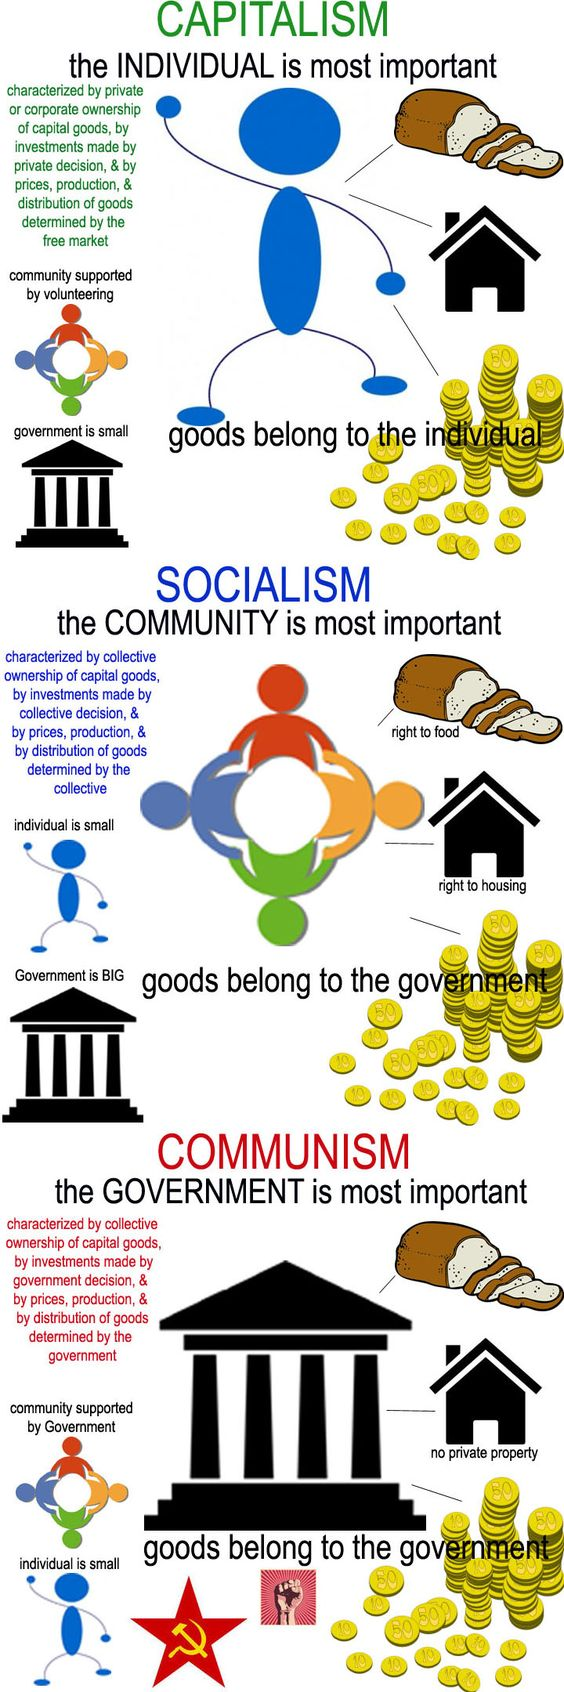 Communism and socialism?